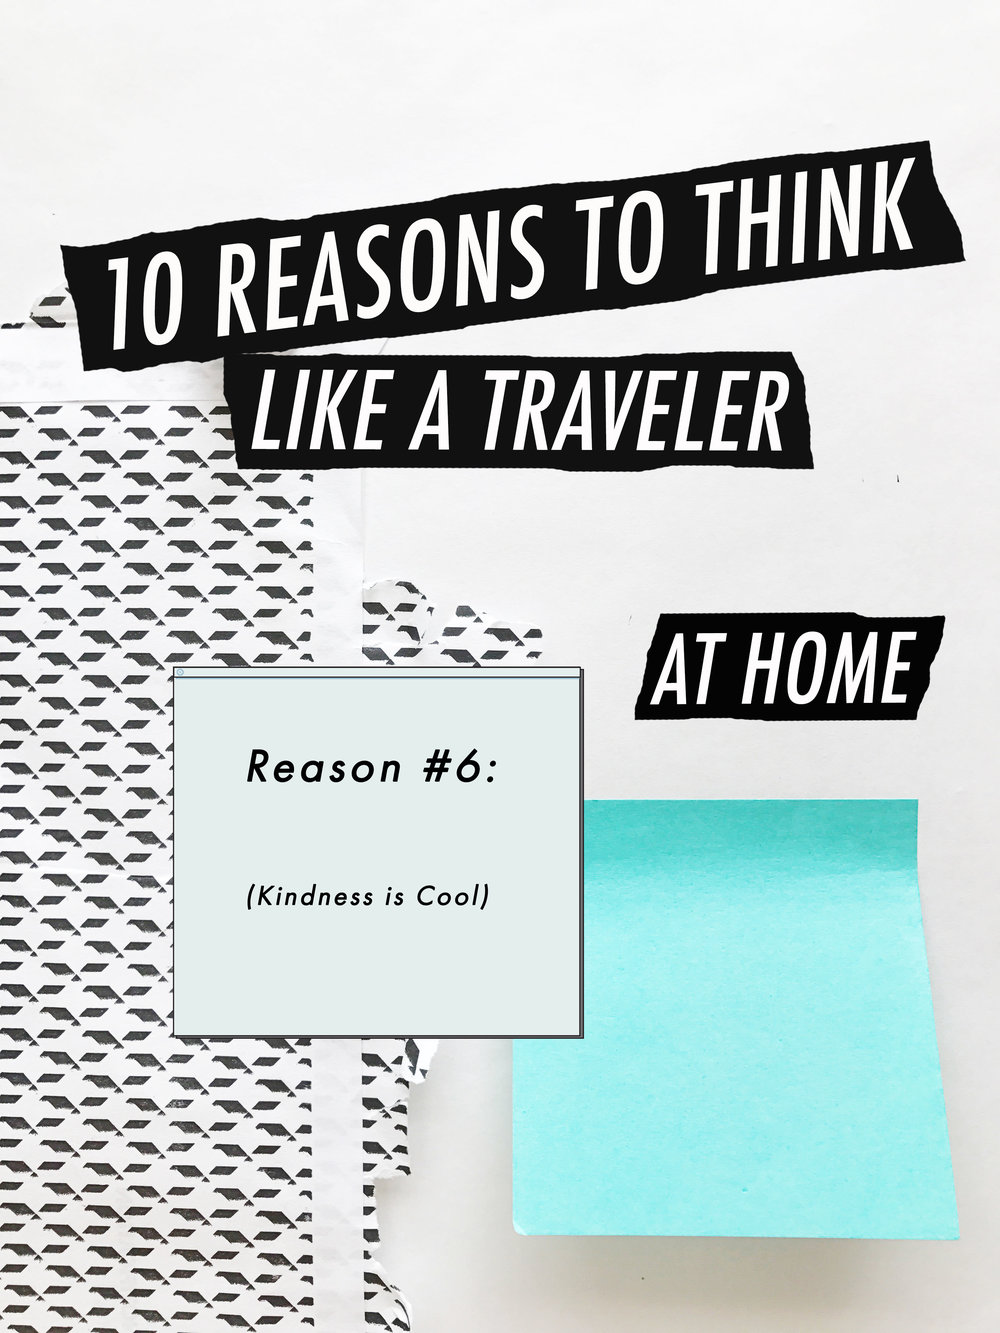 10 Reasons_Reason #6_Local(Tourist)